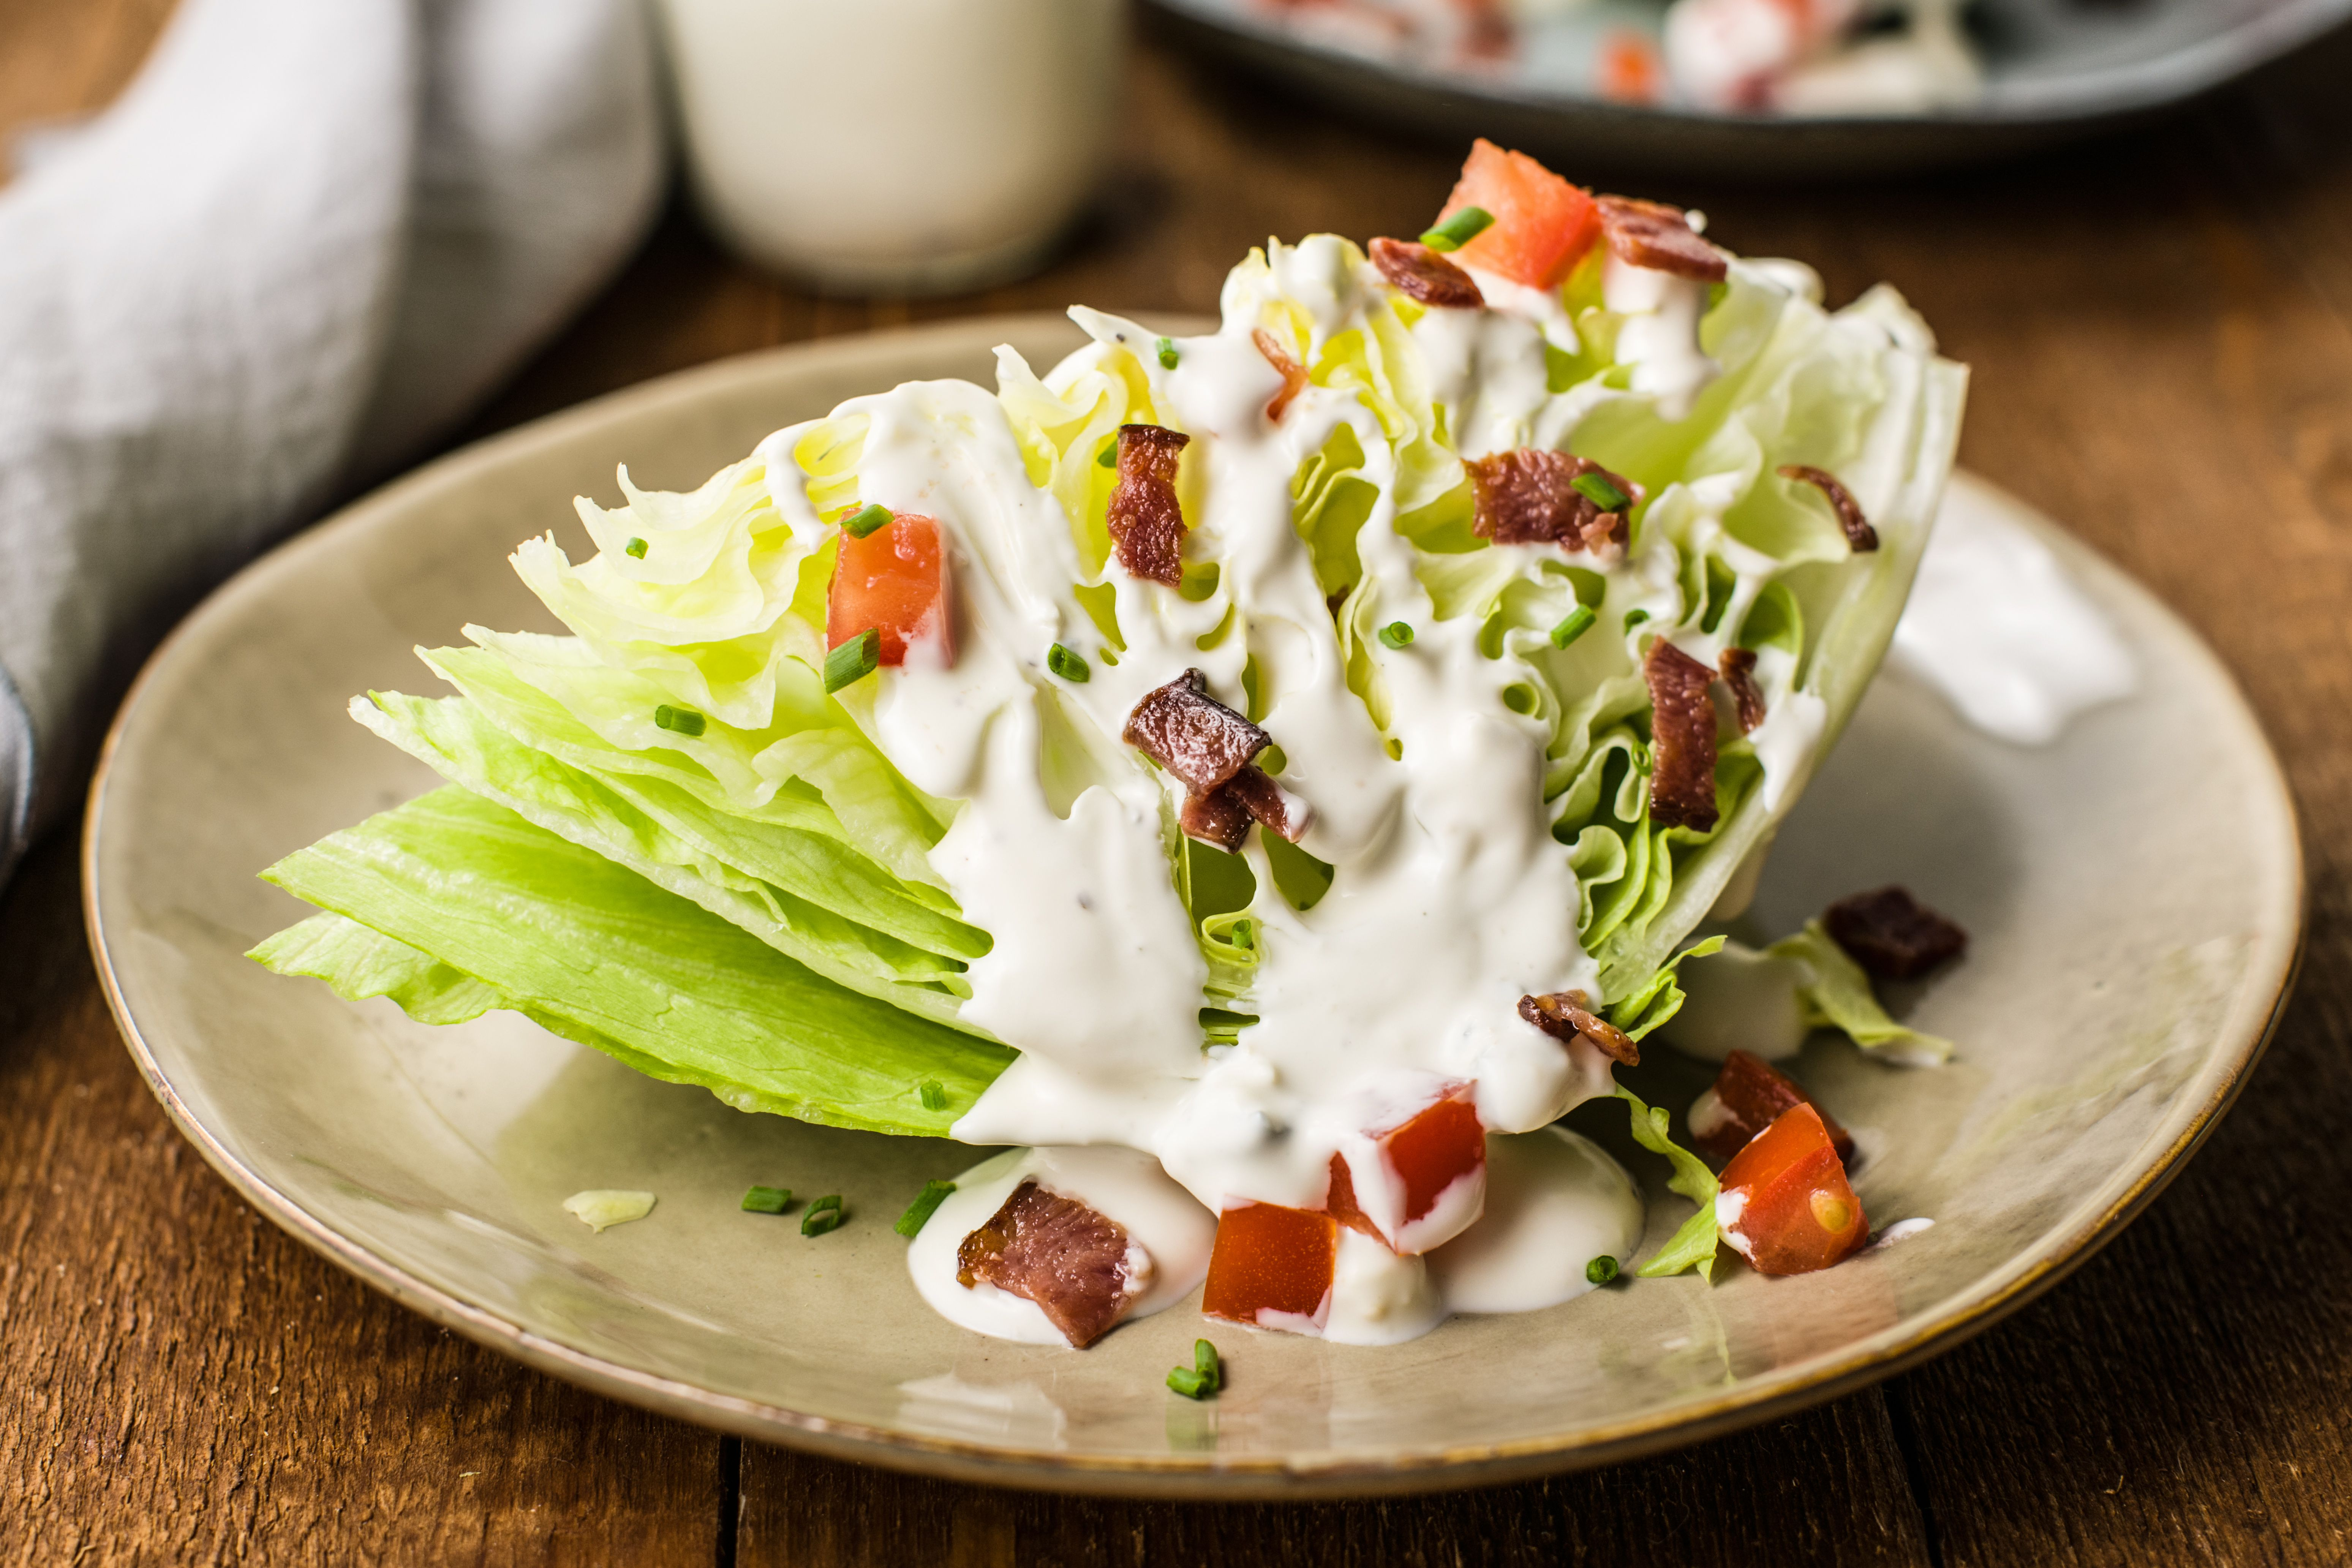 Blue cheese dressing over a wedge of lettuce